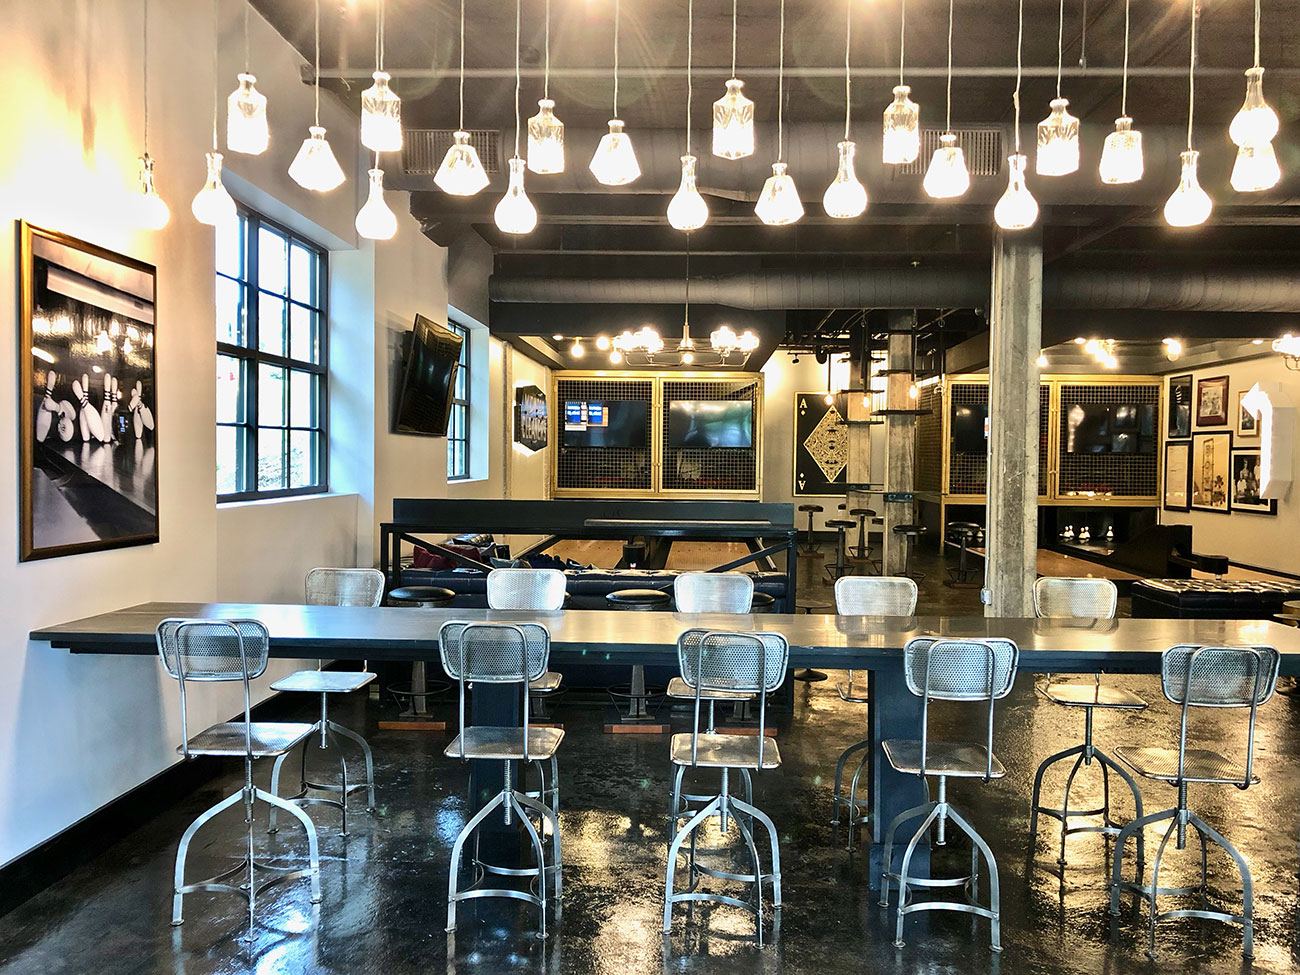 Pinhouse, a new self-serve bar with duckpin bowling from Hoppin' owners, opens July 27 in Plaza Midwood